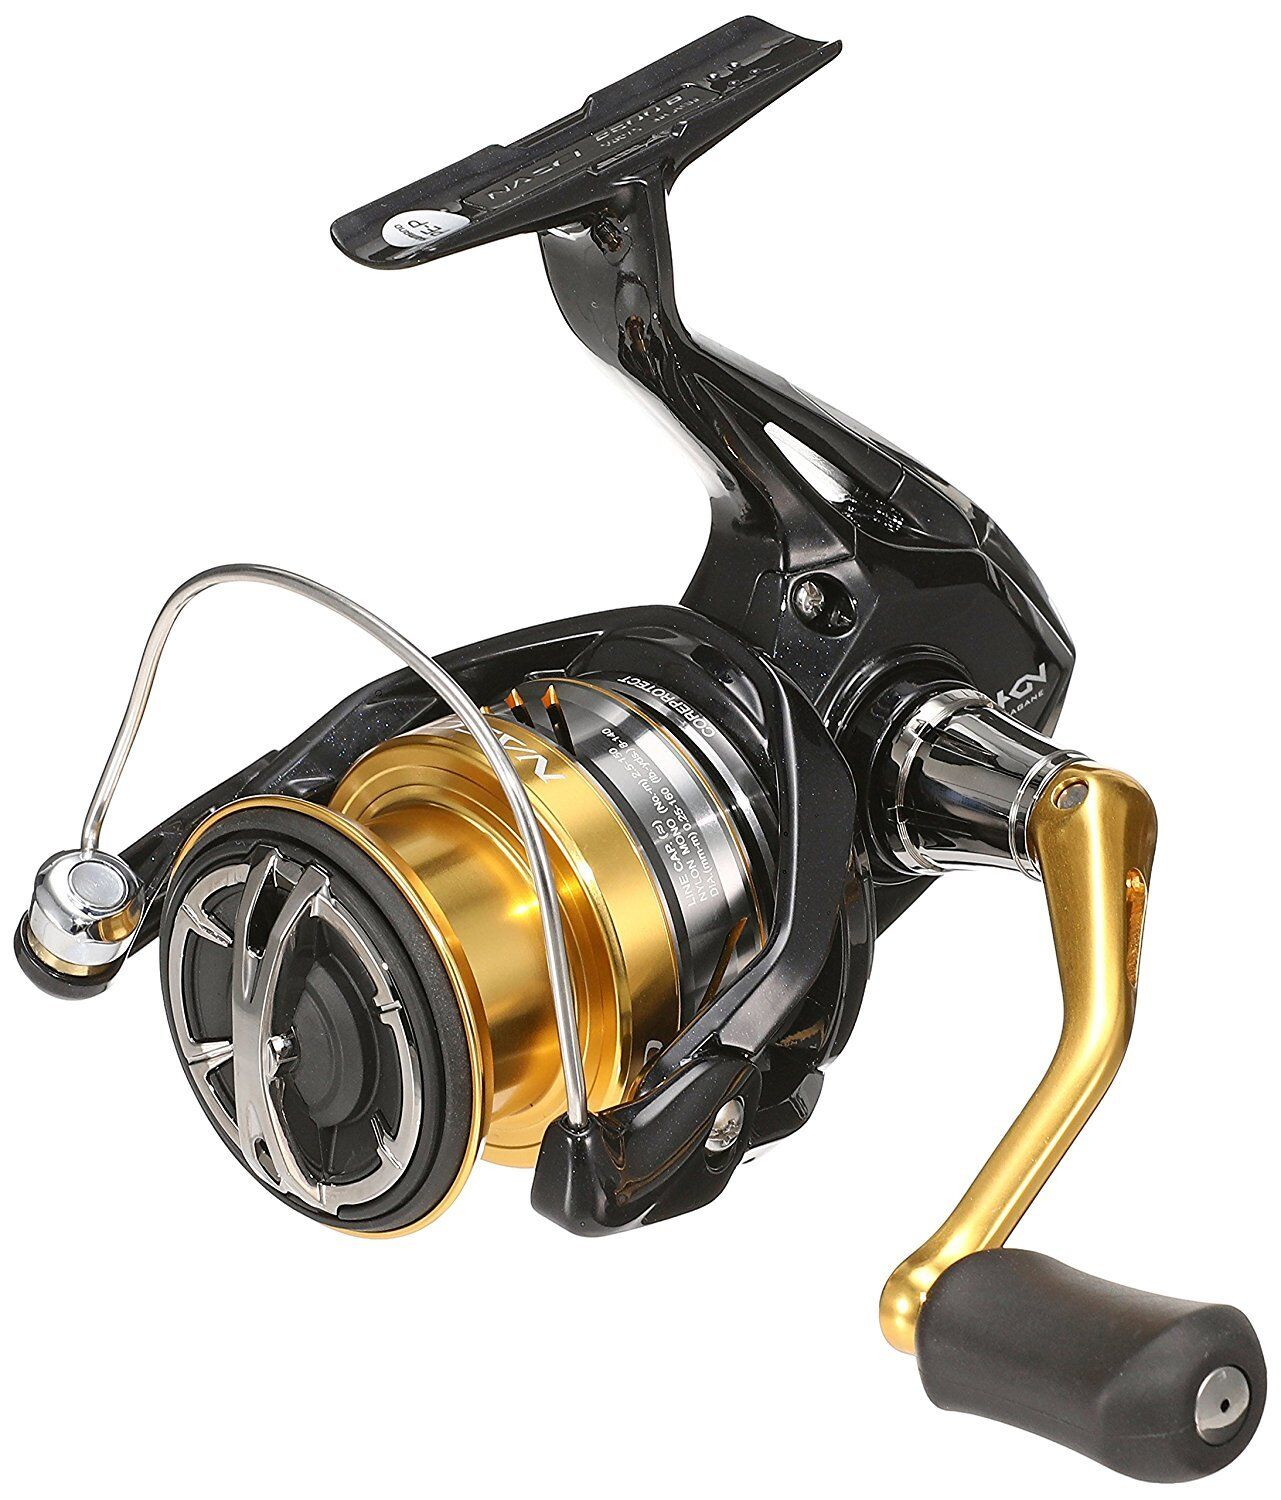 SHIMANO REEL 16 NEW NASKIE 2500 BRAND NEW 16 F/S db9553